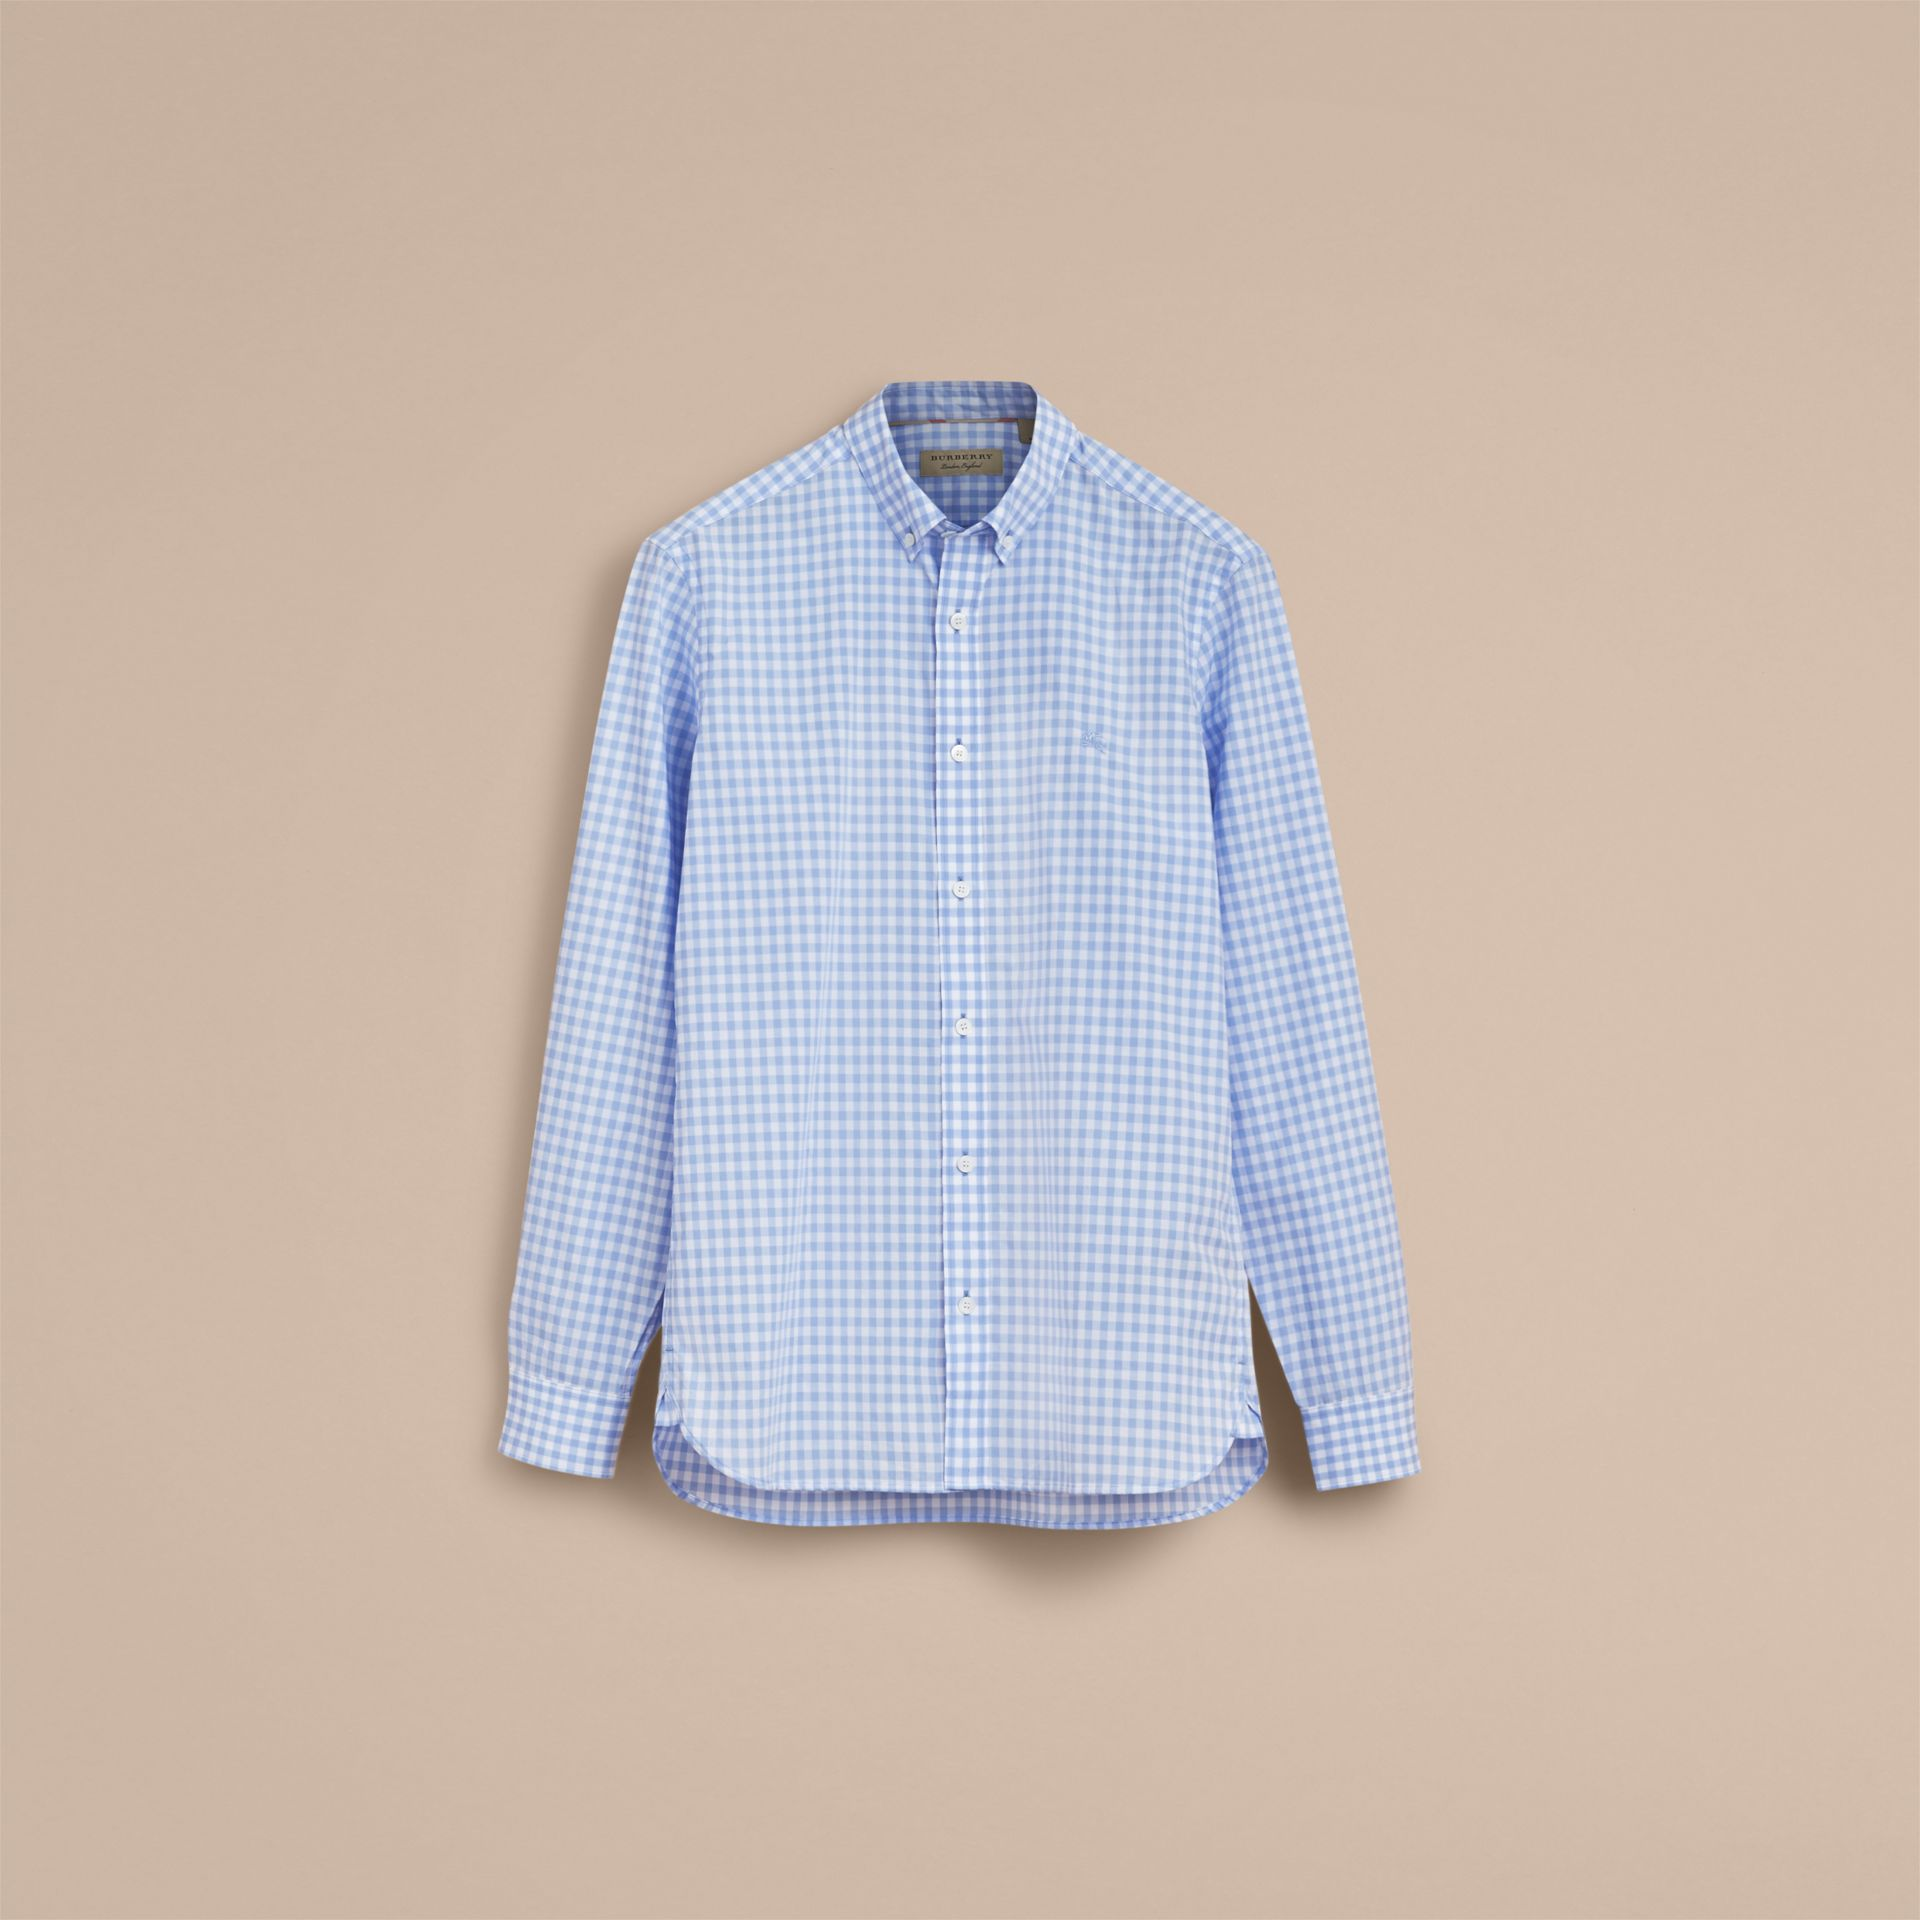 Button-down Collar Gingham Cotton Shirt Pale Blue - gallery image 4